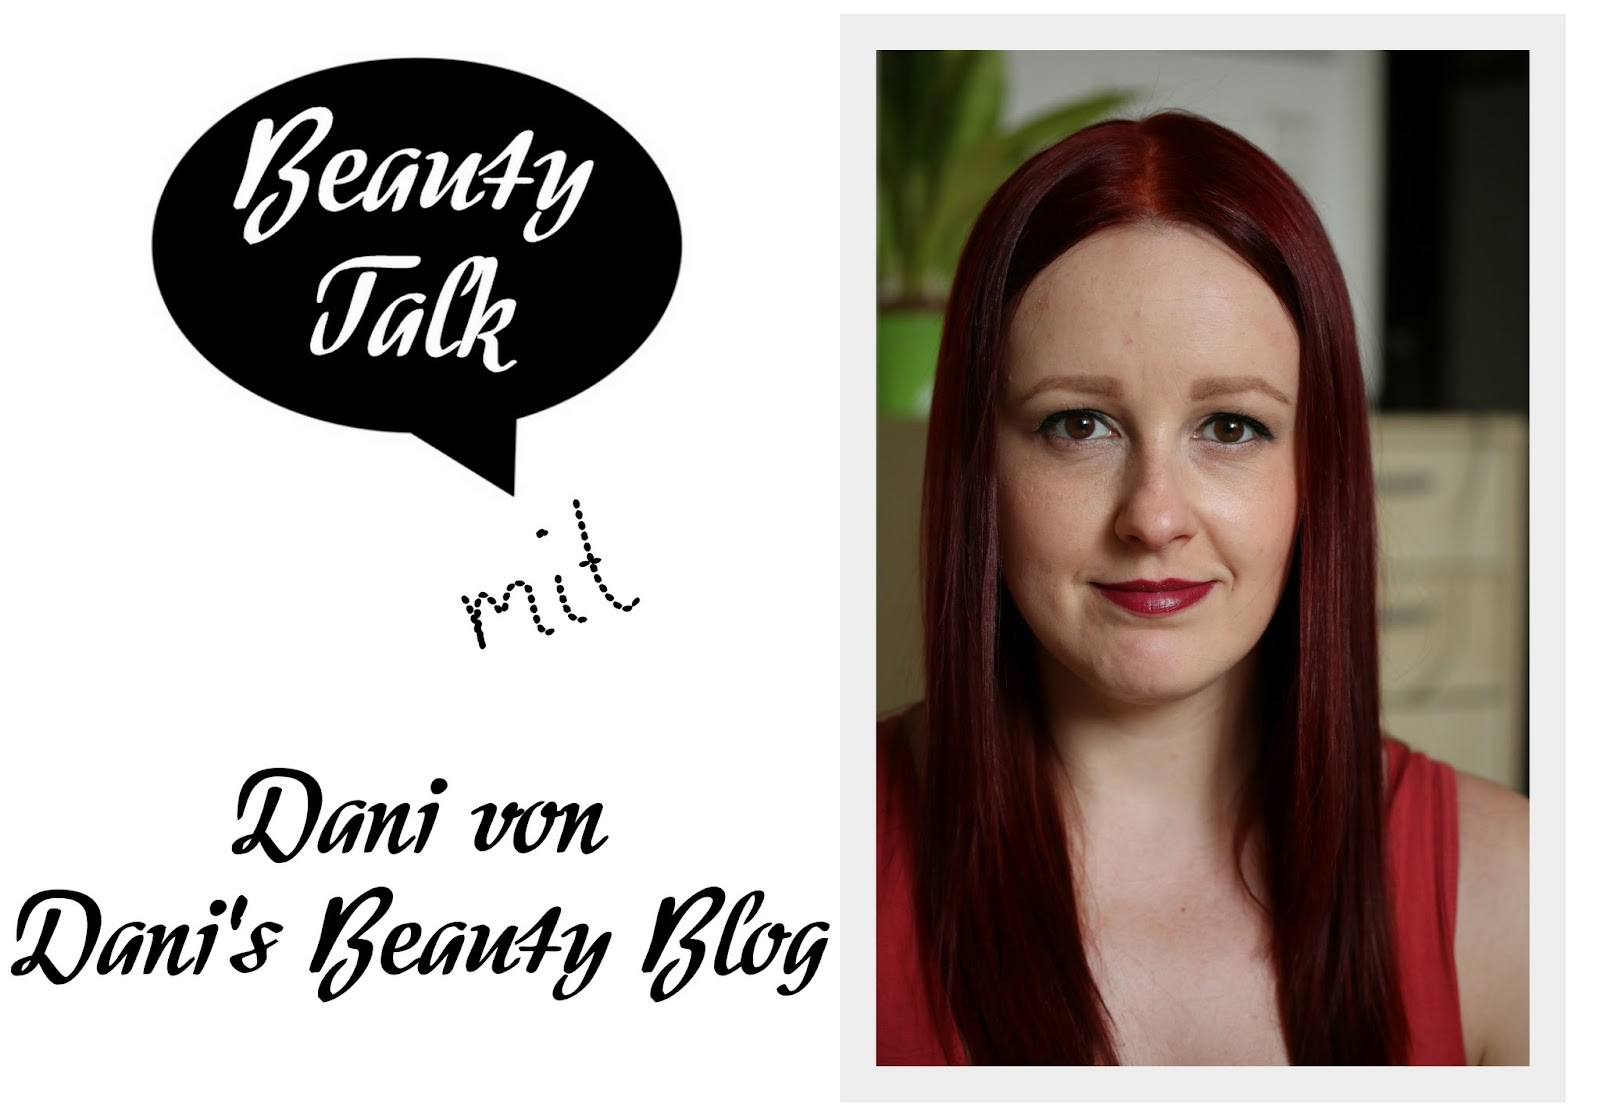 Beauty Talk: 3 Fragen an Dani von Dani's Beauty Blog